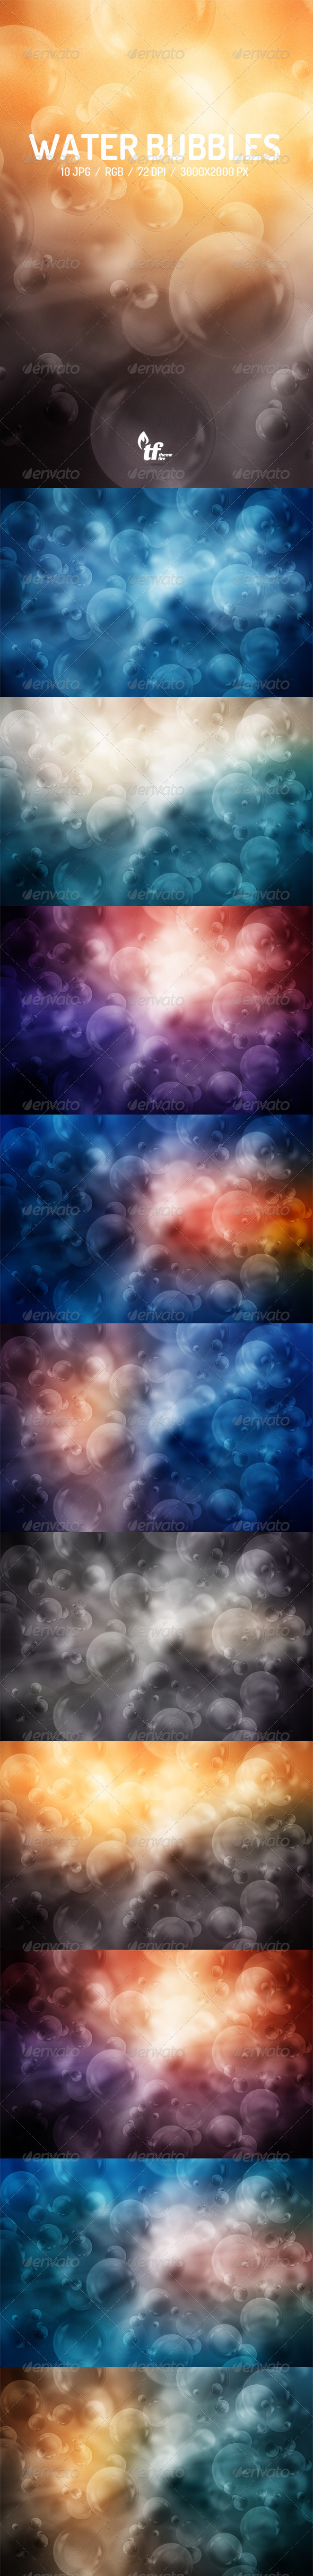 GraphicRiver Water Bubbles Backgrounds 7907197